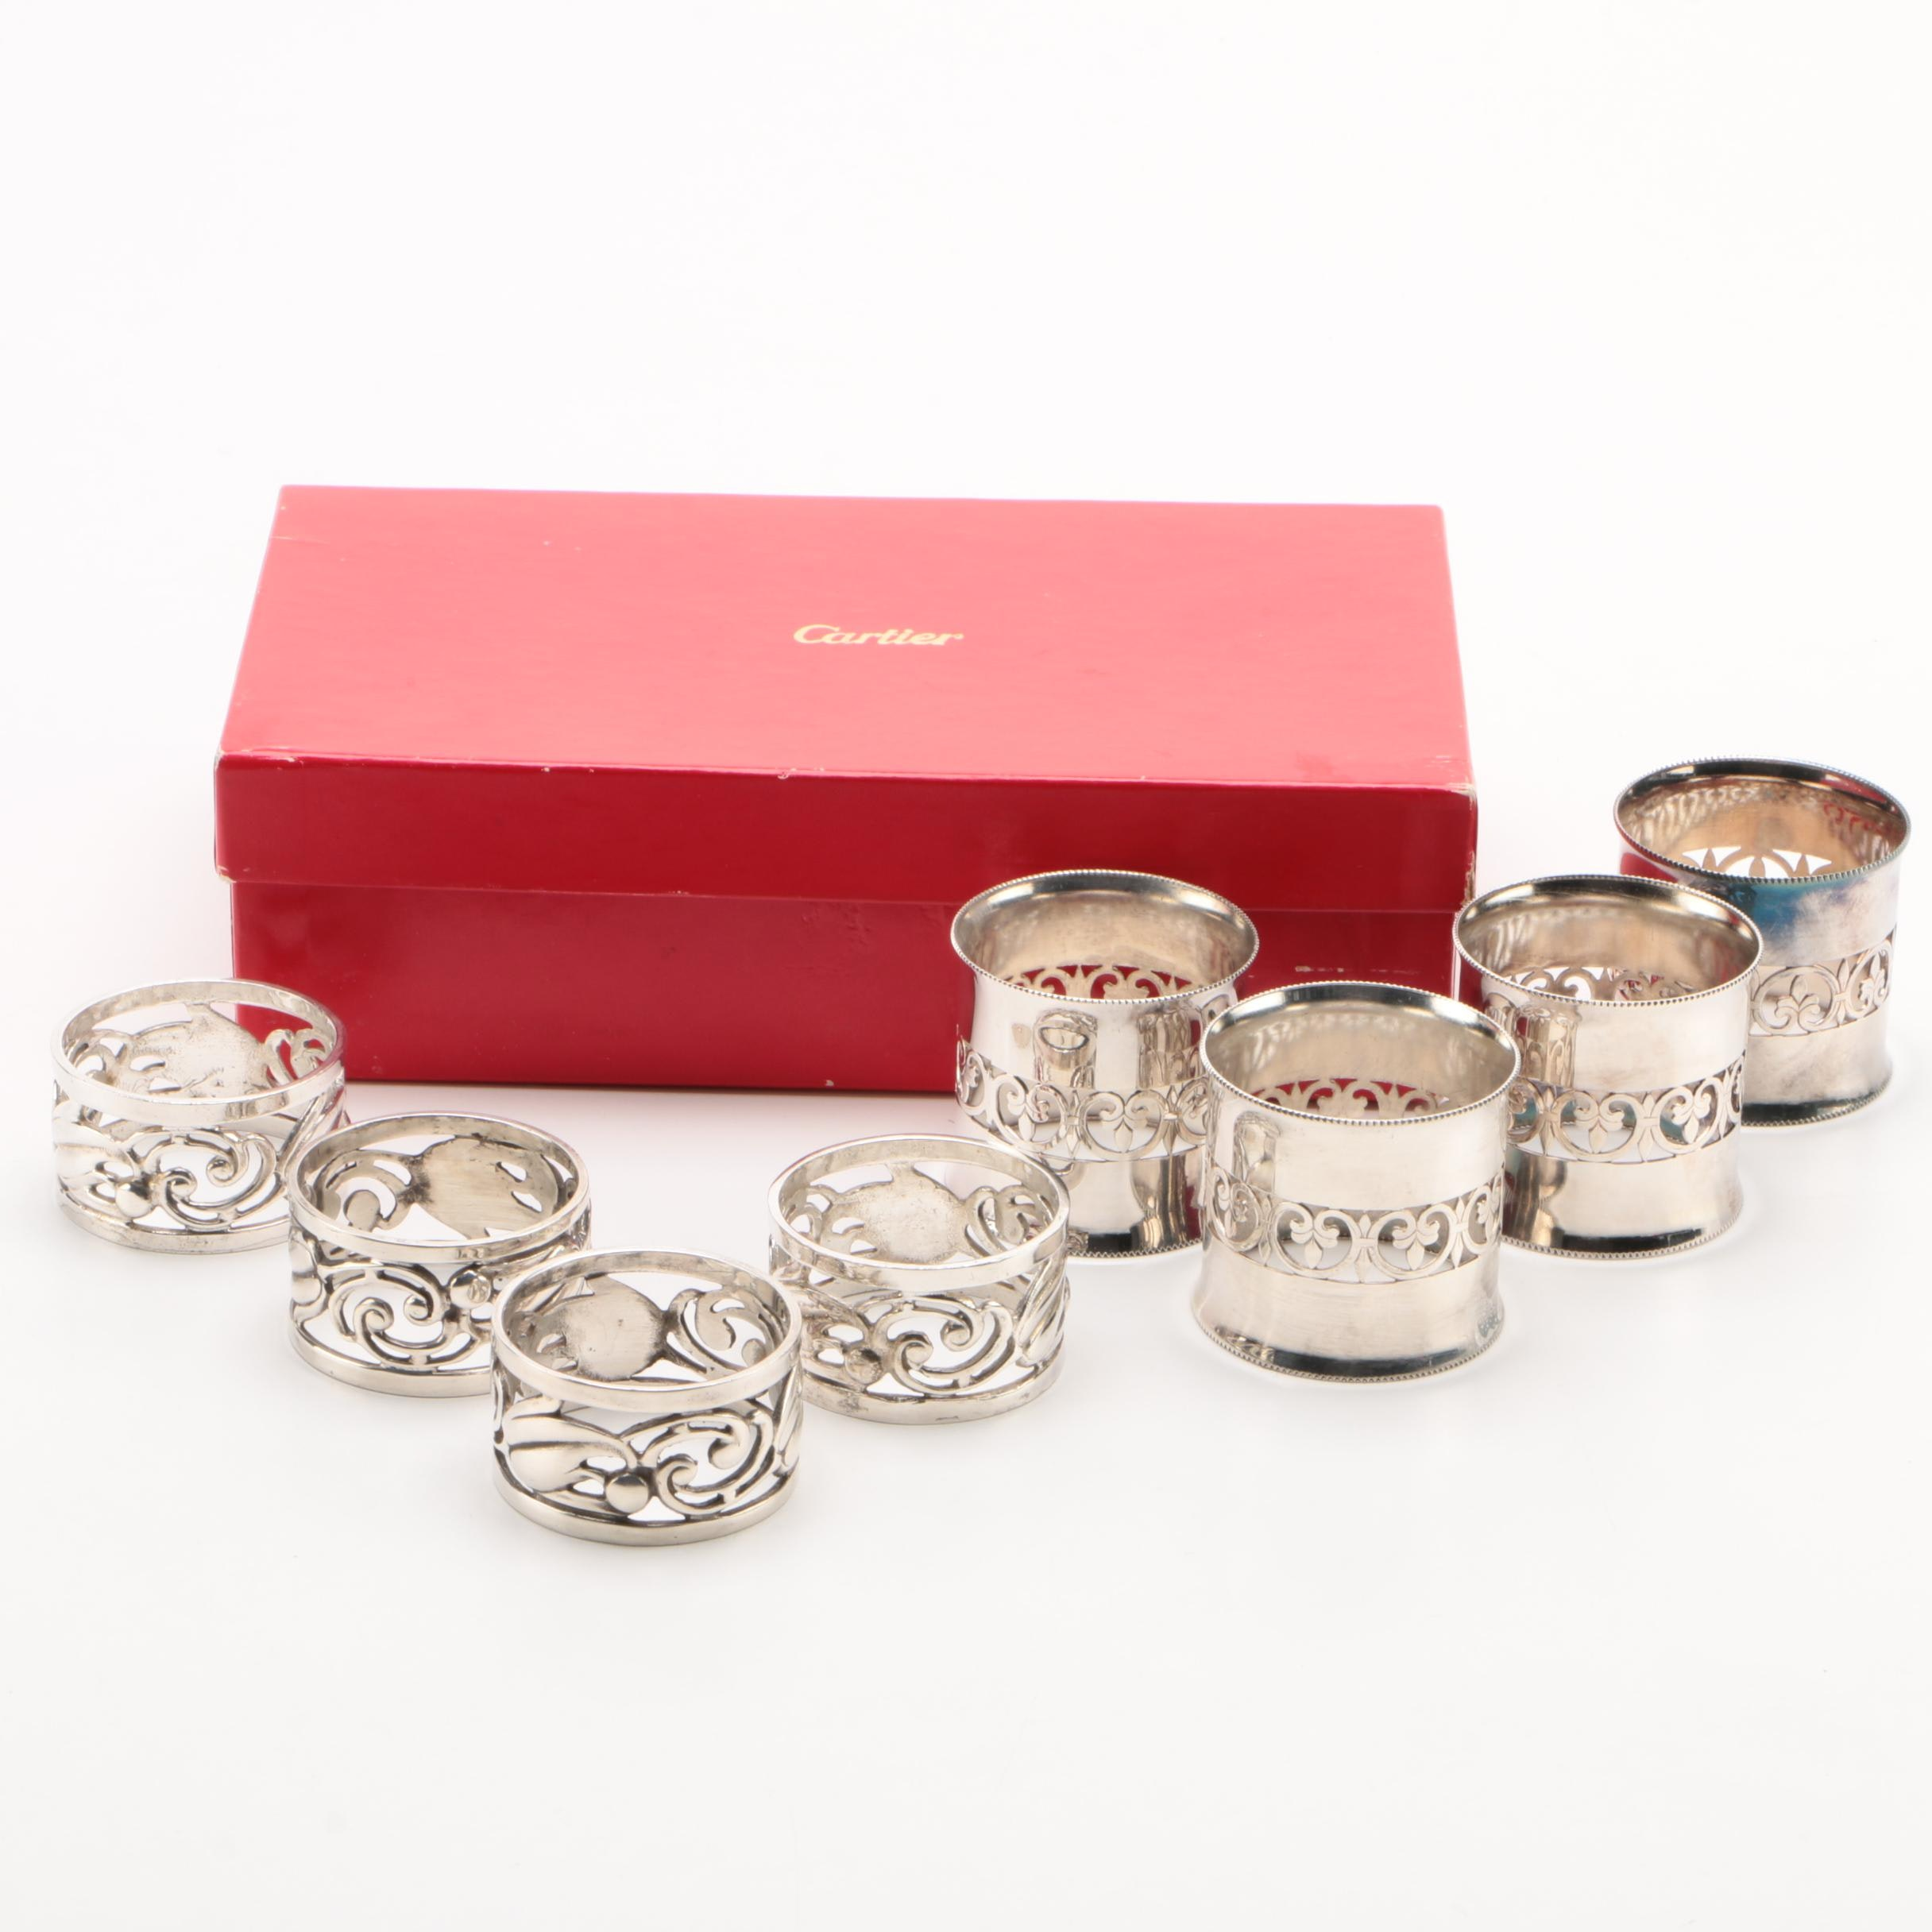 Cartier Sterling Silver Napkin Rings with Italian Silver Plate Pierced Rings